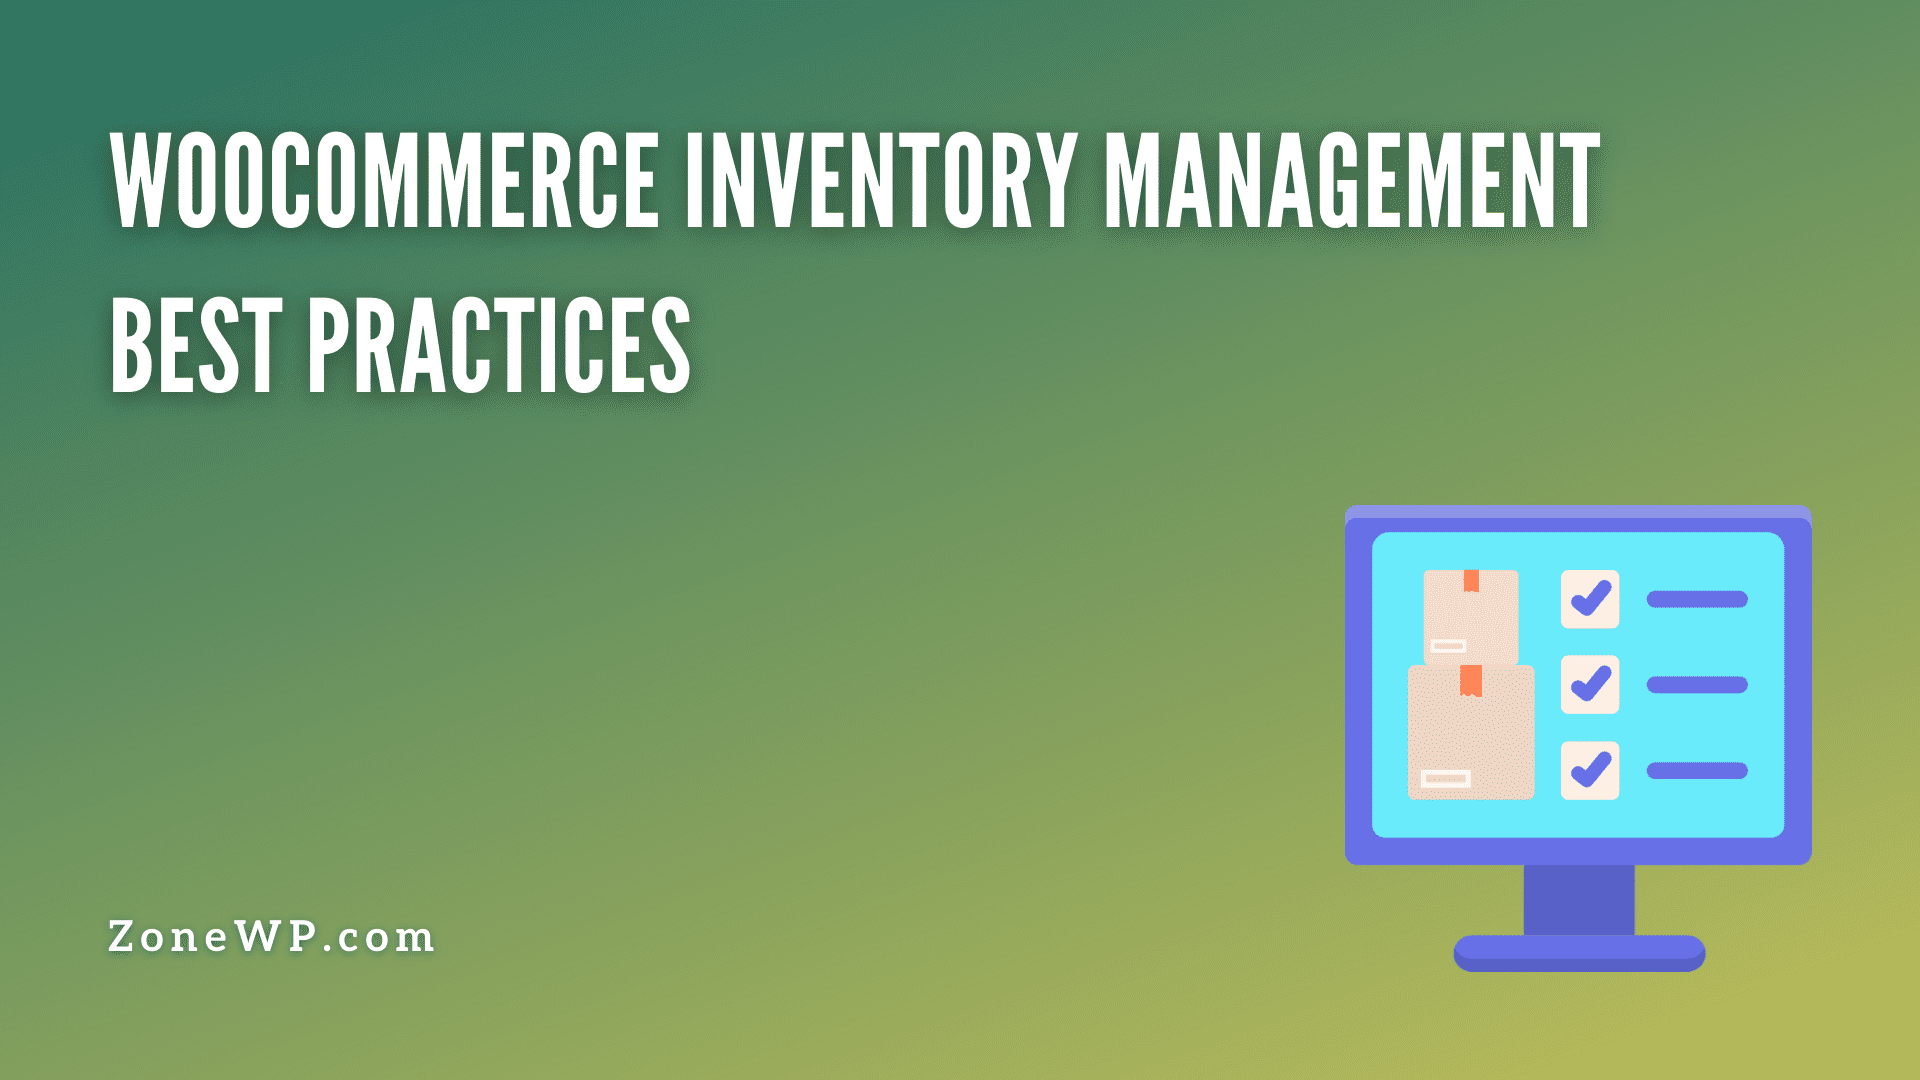 WooCommerce Inventory Management Best Practices